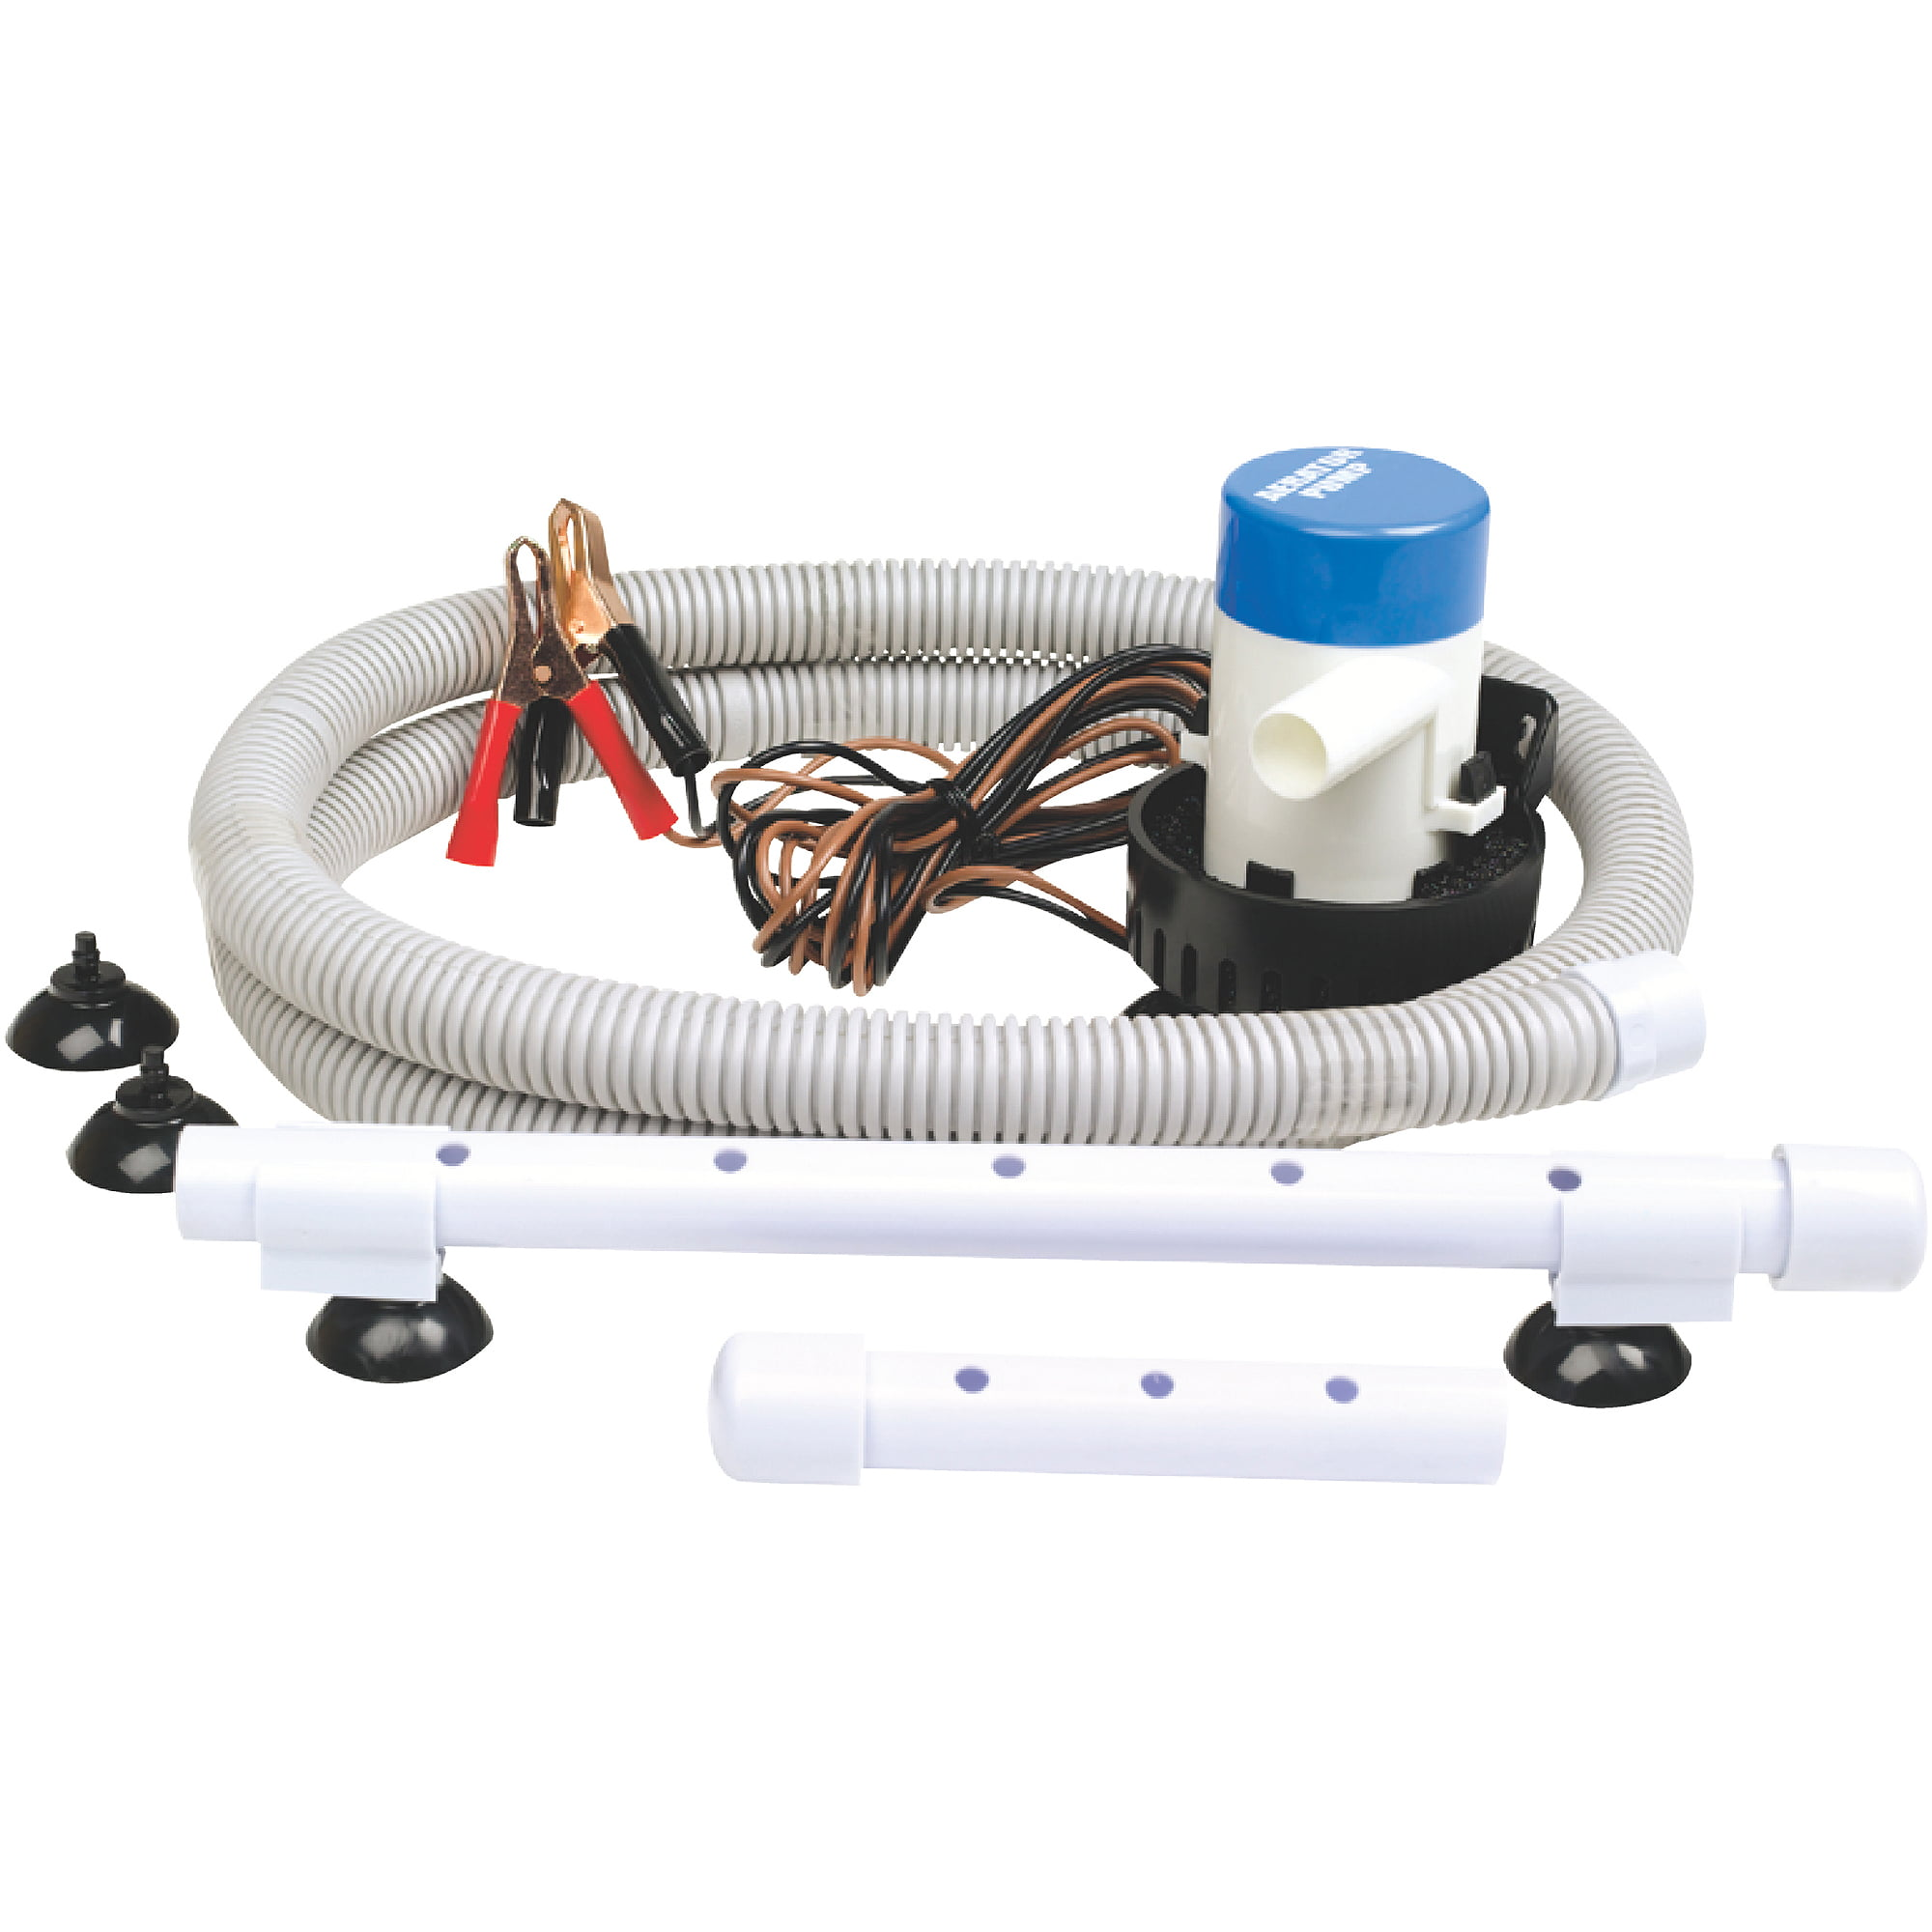 "Click here to buy Seachoice 12V Aeration Pump System 360 GPH with 3 4"" Outlet by Seachoice Products."